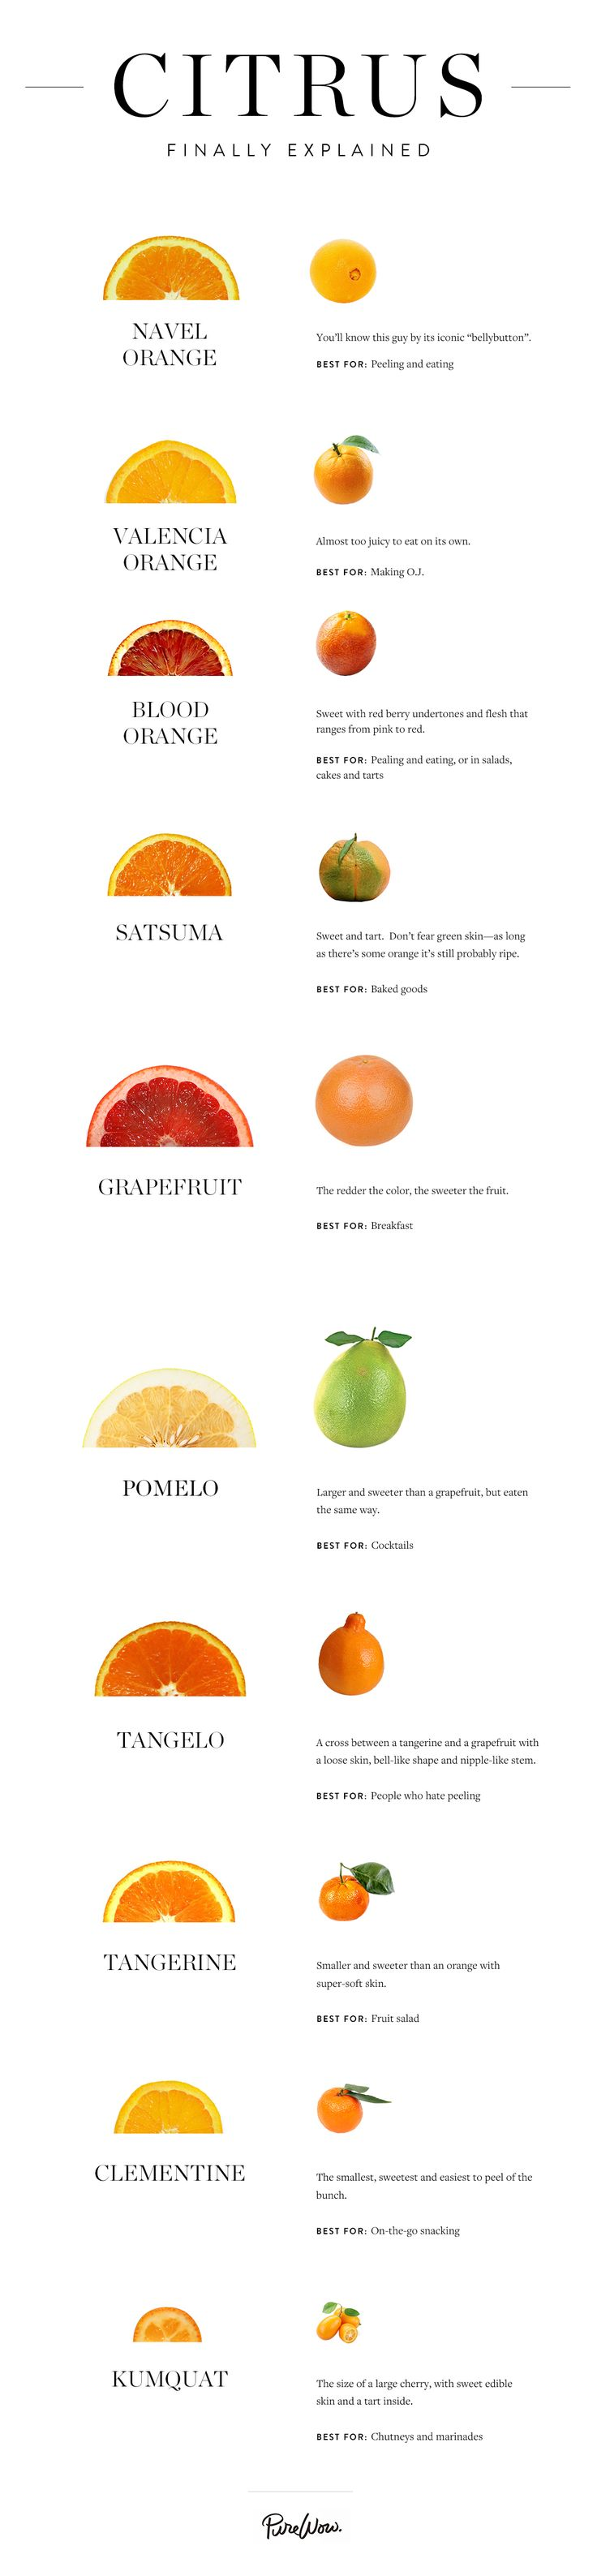 All the Winter Citrus Finally Explained. Uhh, what's the difference between a tangelo and a pomelo again?